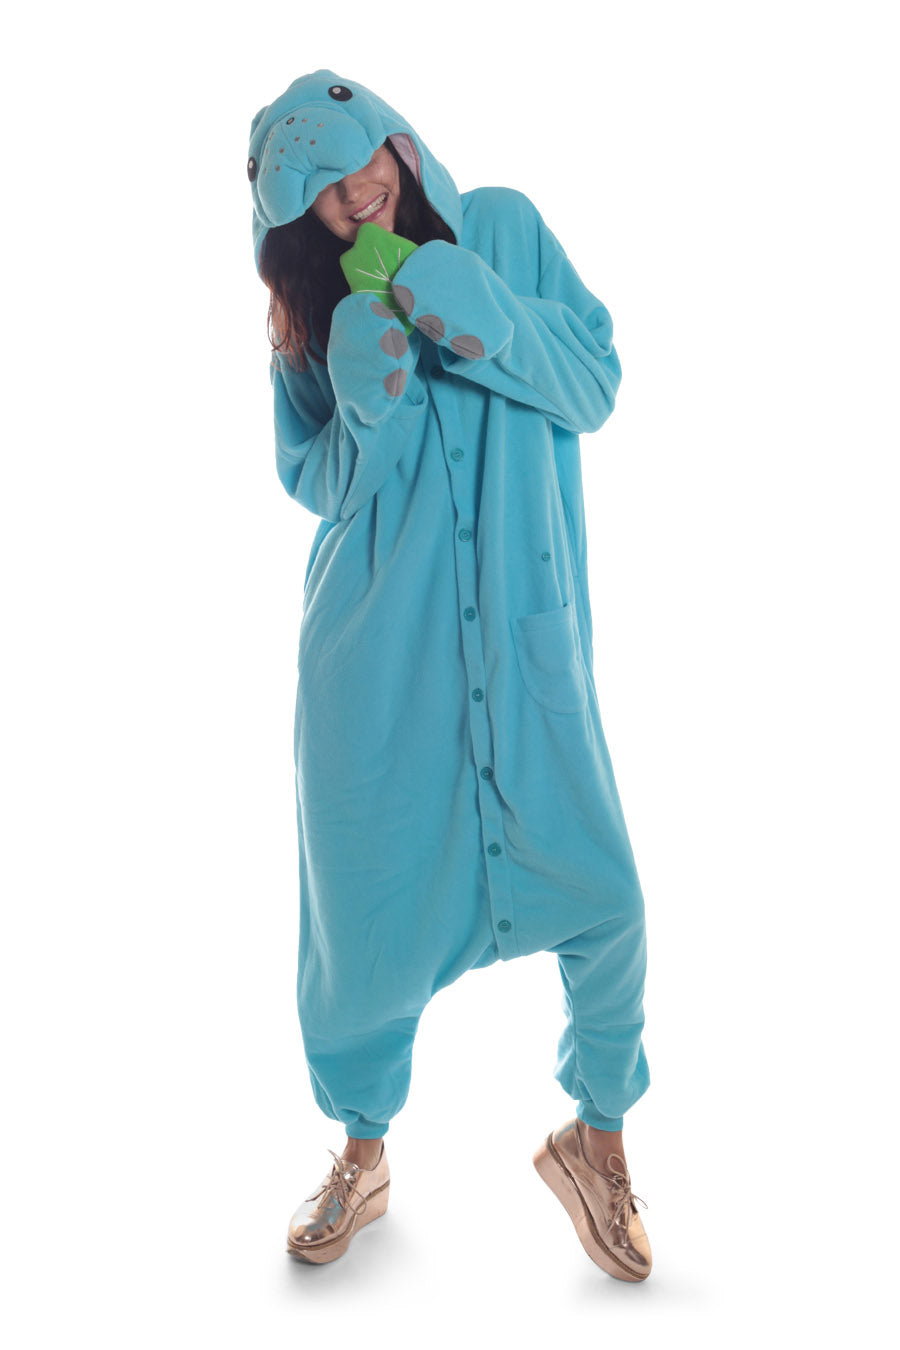 Manatee Animal Kigurumi Adult Onesie Costume Pajamas Blue Main